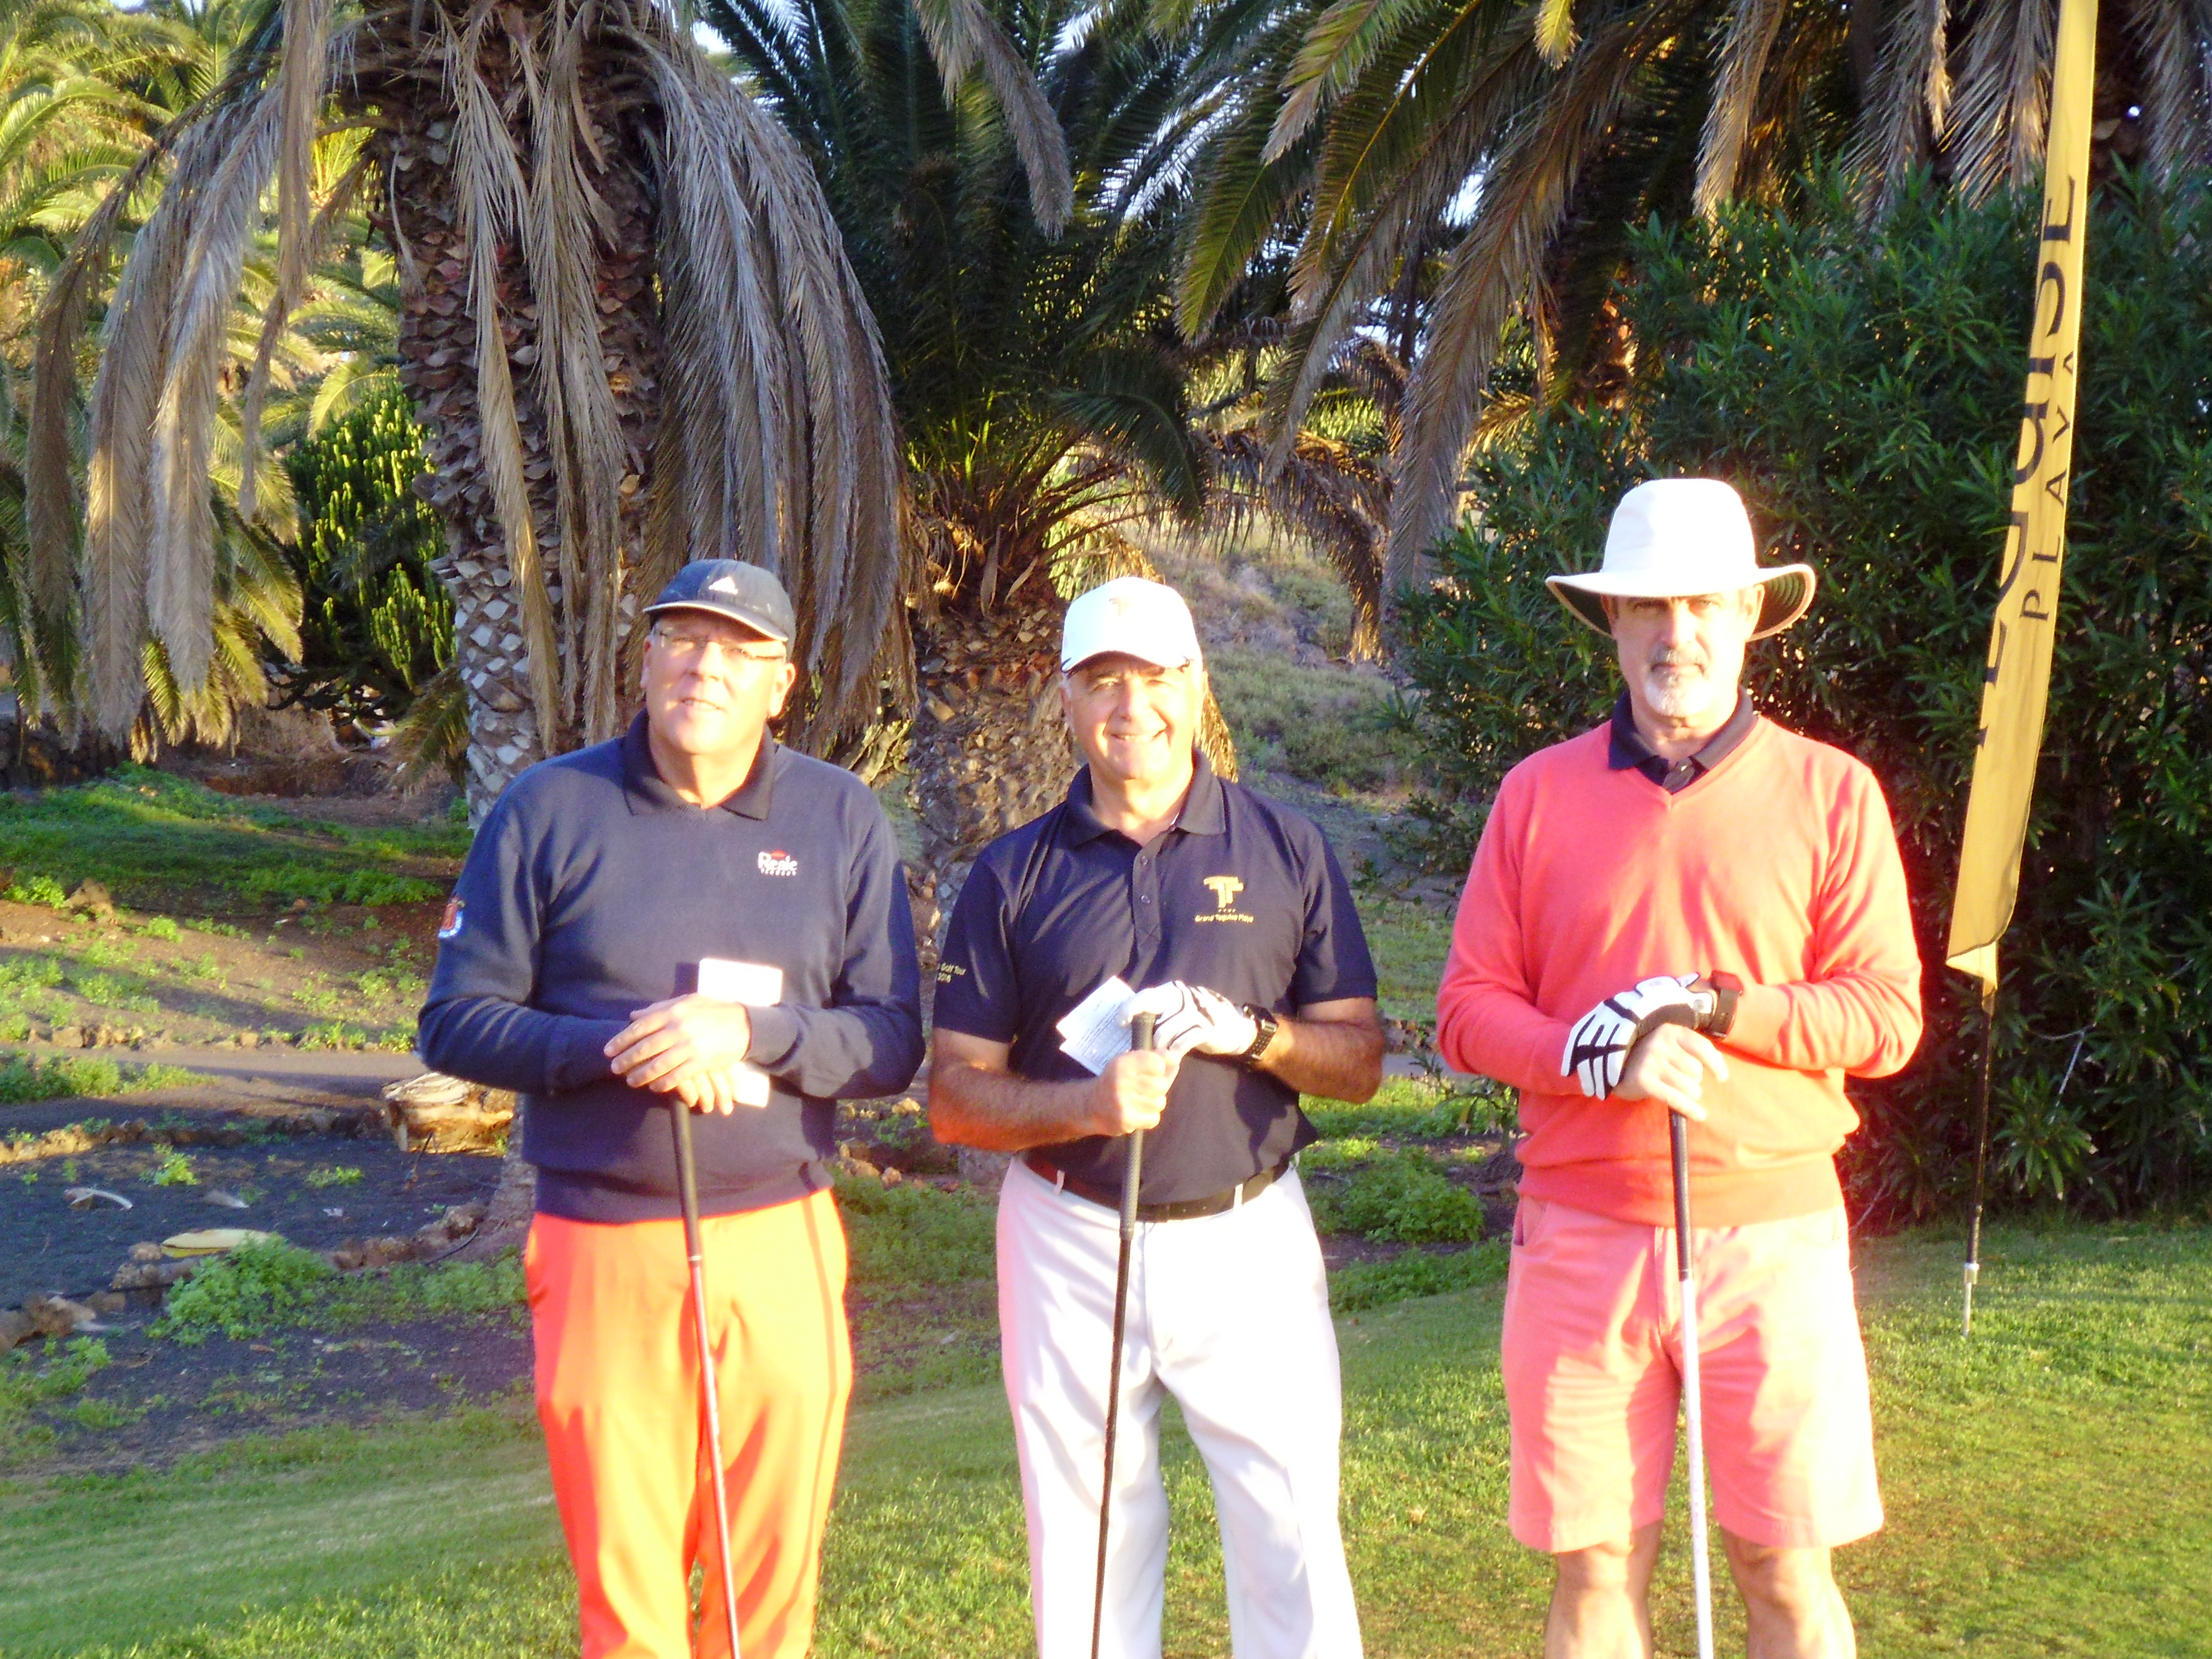 National Final of the Lanzarote Golf Tour, 14th and 15th of December 2018